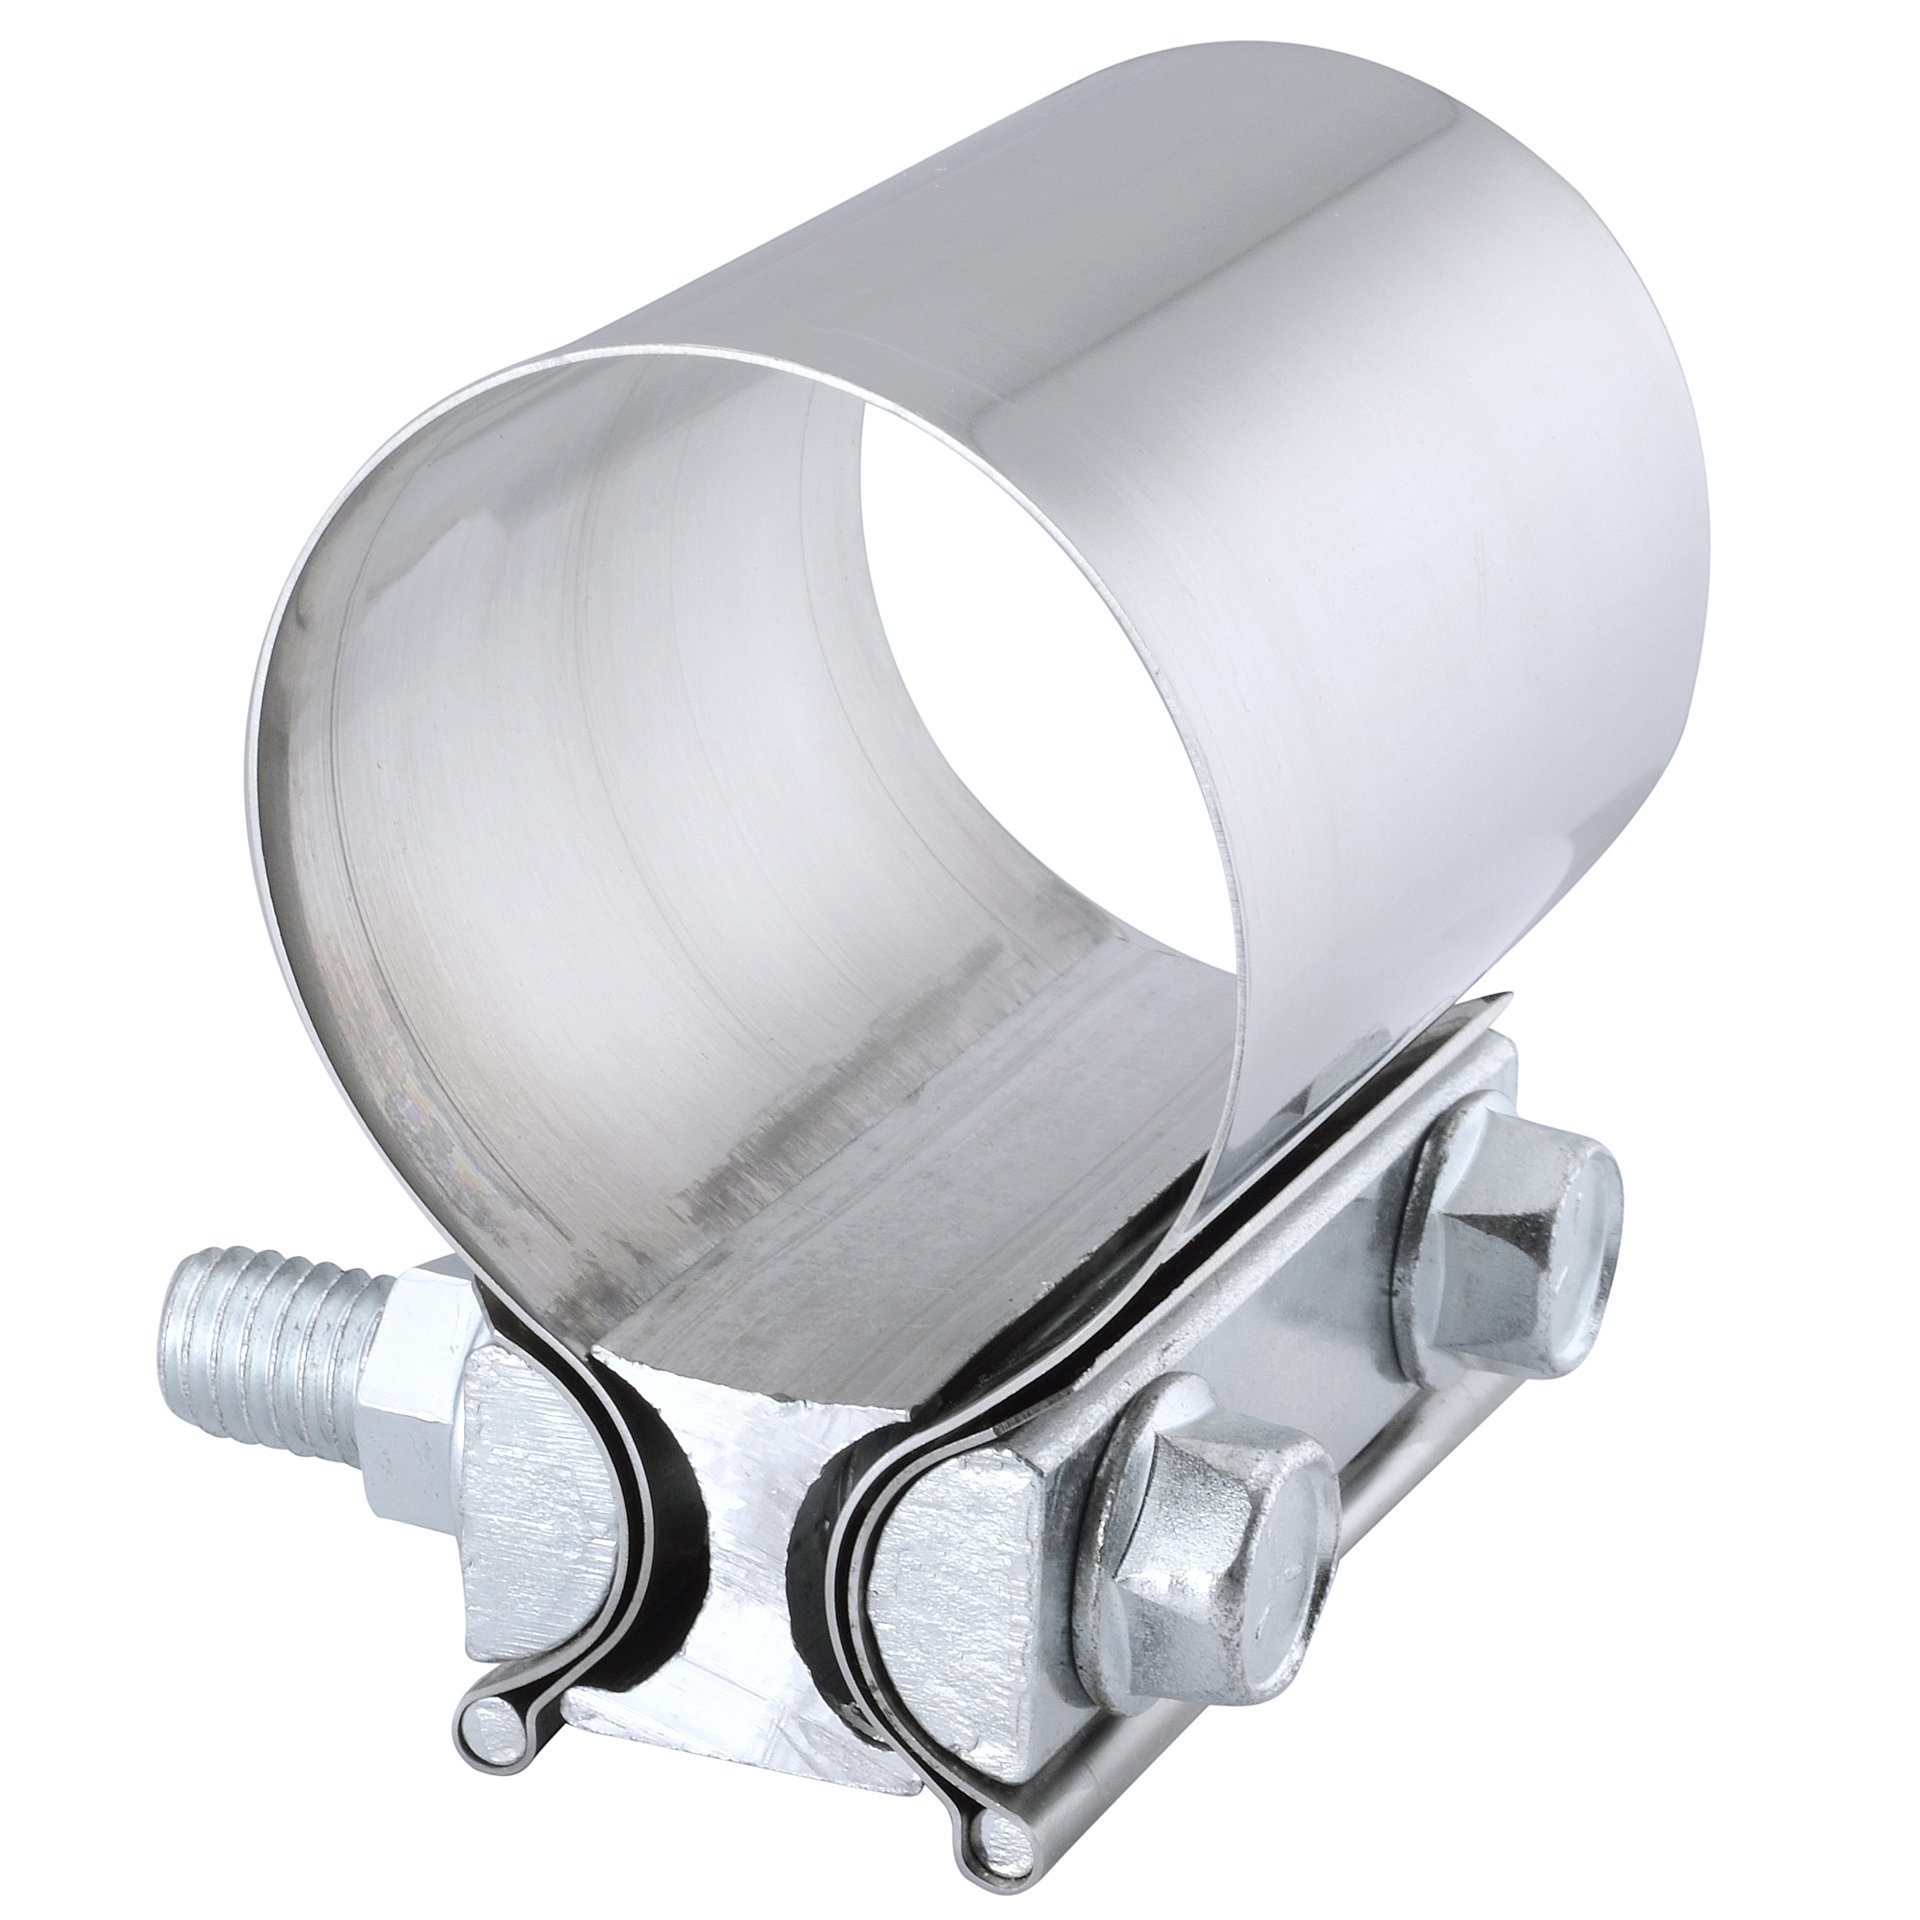 Evilenergy 3'' Butt Joint Stainless Steel Exhaust Sleeve Clamp Band